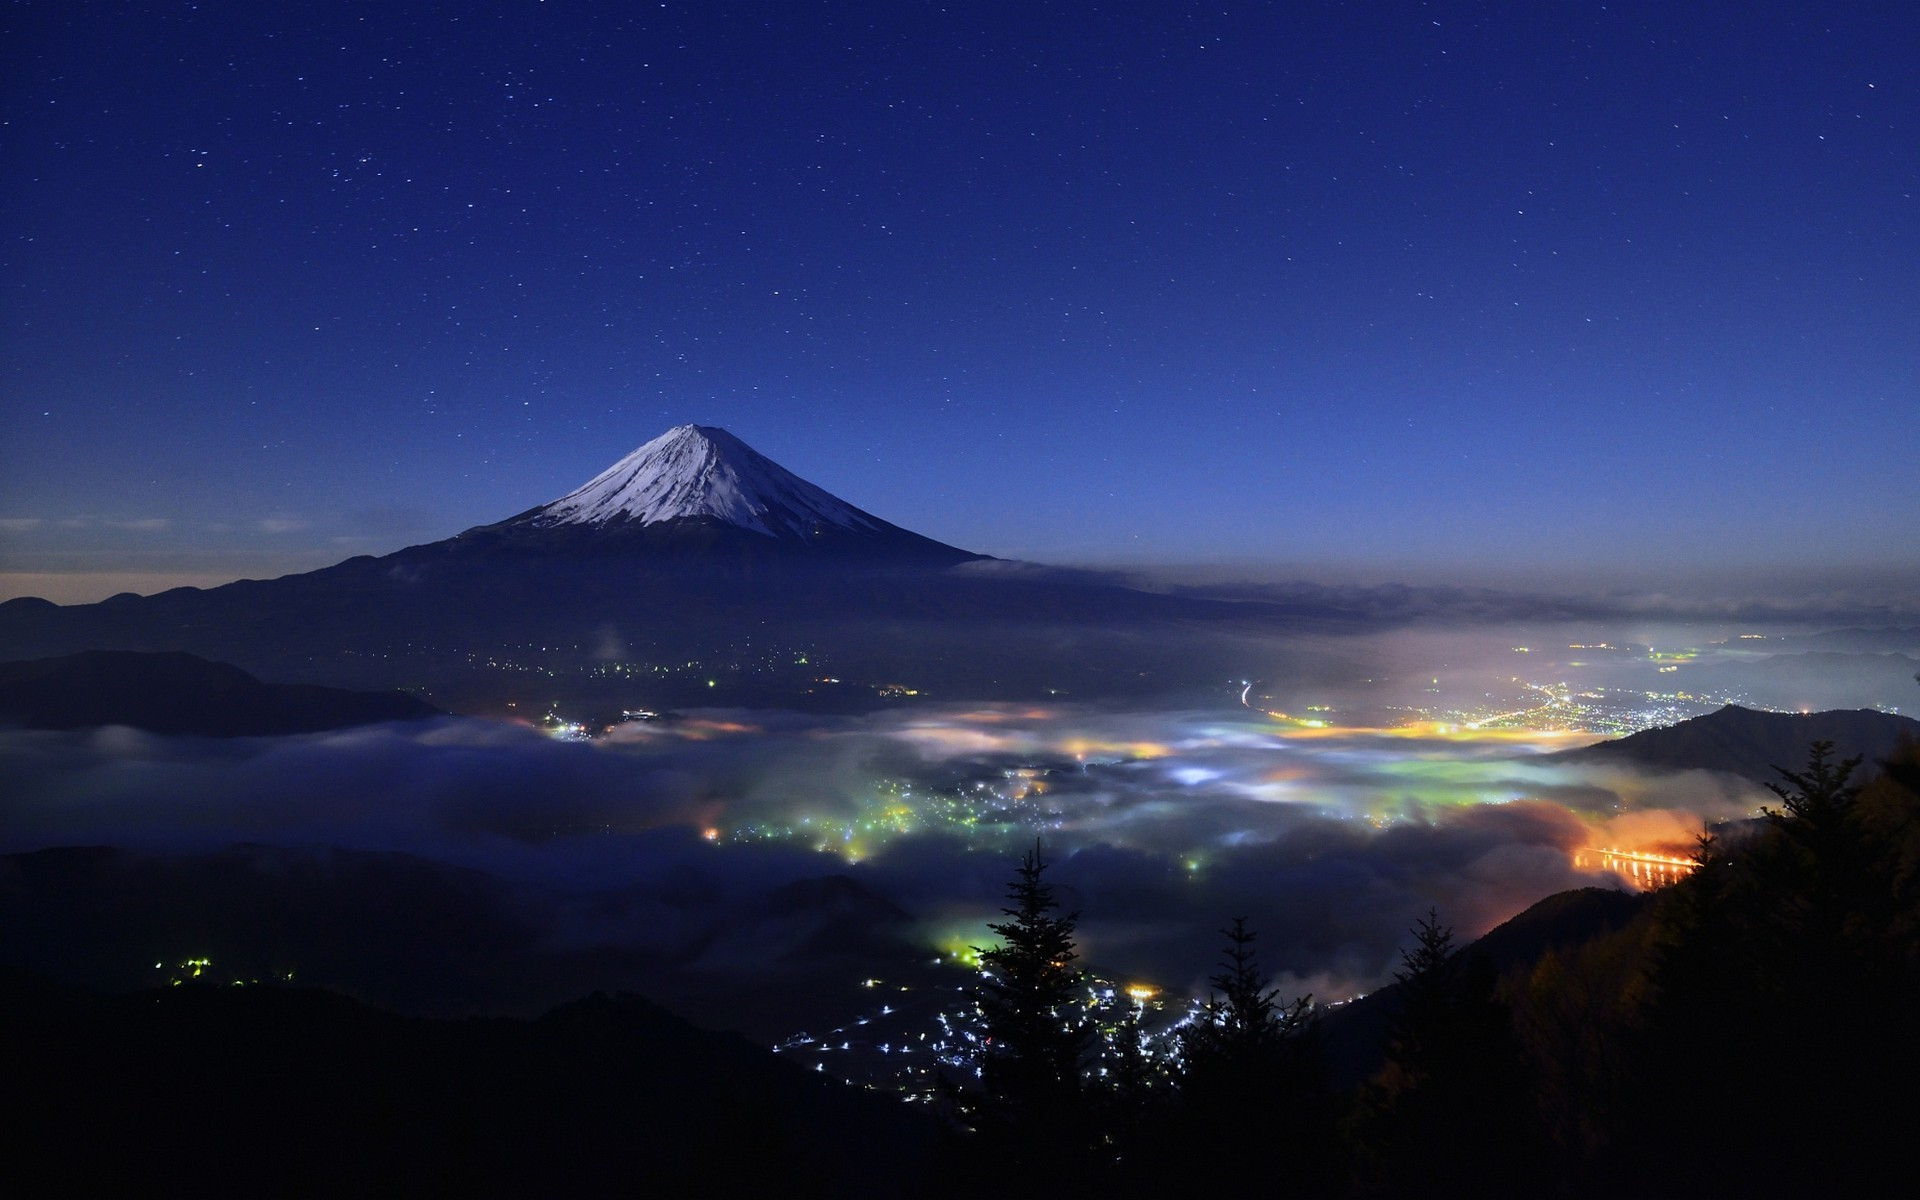 nature, Landscape, Starry Night, Mountain, Cityscape, Mist, Snowy Peak,  Lights, Trees, Mount Fuji, Japan Wallpapers HD / Desktop and Mobile  Backgrounds